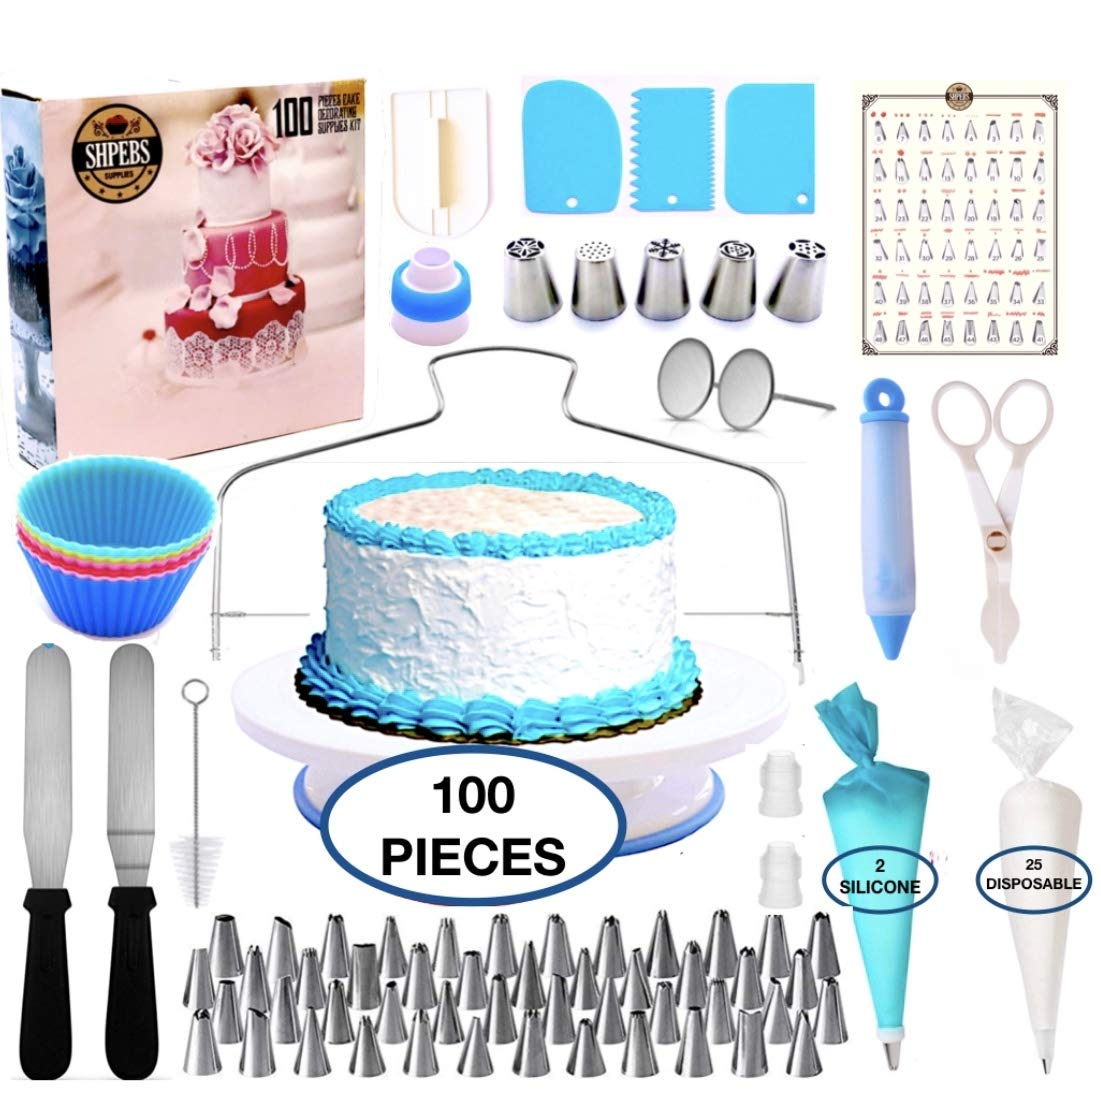 Cake Decorating Supplies-100 pcs Kit, Baking Set | Nonslip Rotating Turntable stand | 48 easy to use Numbered Tips with Pattern chart |piping Bags-Pastry and Icing Frosting Tools-Russian Nozzles